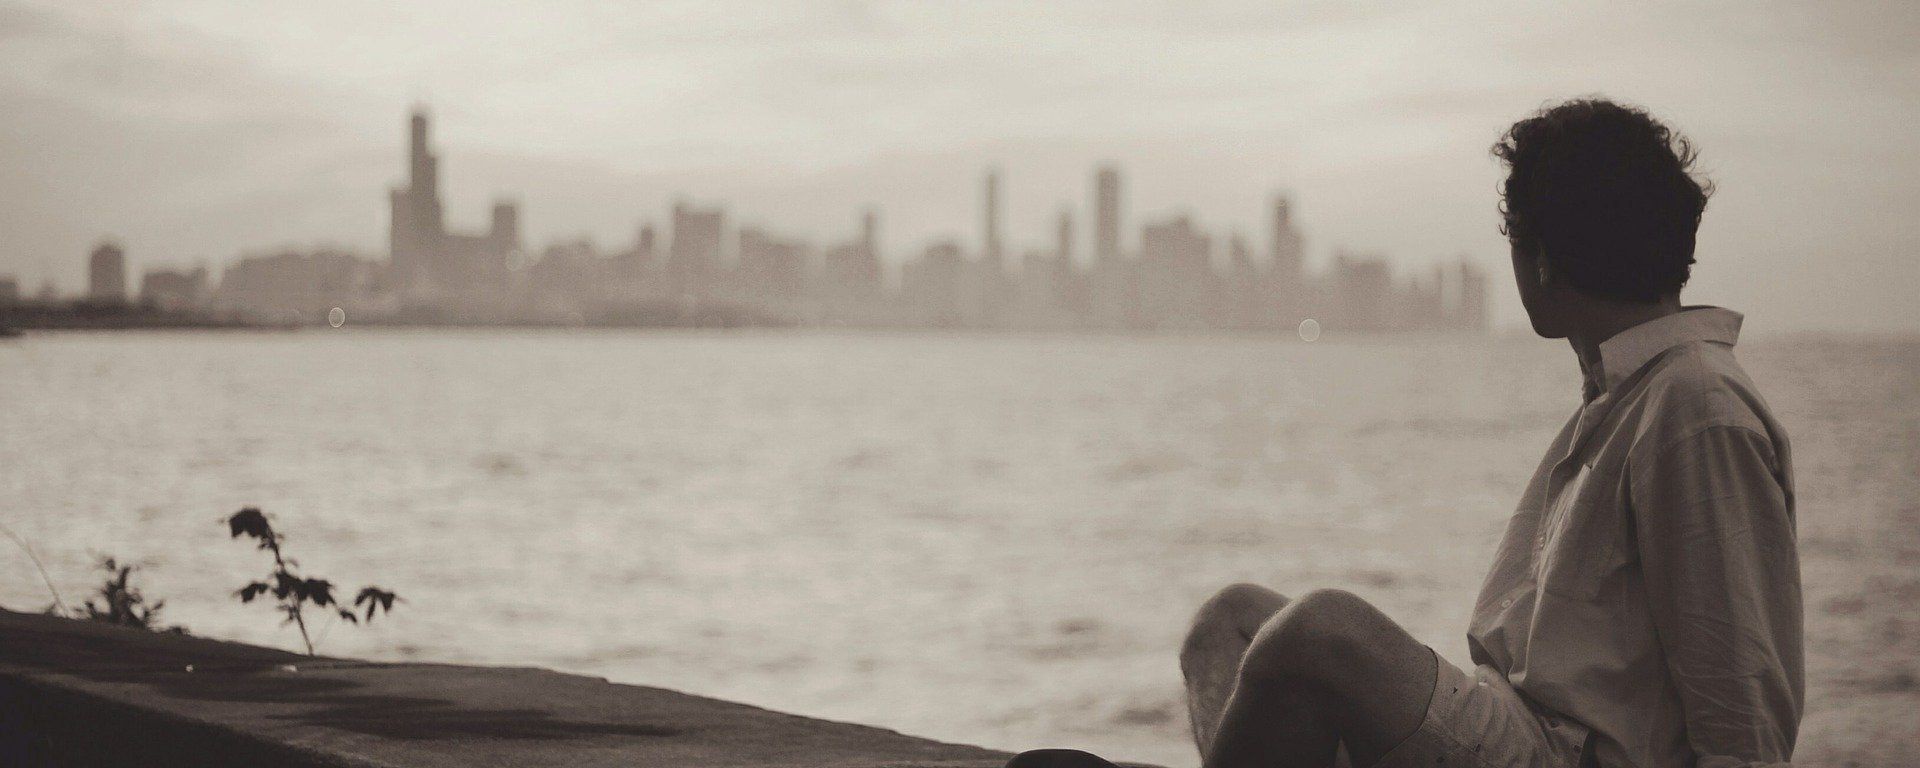 seaside,man,sitting,relax,wait,wall,waiting,lifestyle,casual,thinking,alone,single,young,person,adult,male,people,grunge,guy,waterfront,city,buildings,skyline,view,looking,watching,DON CHARISMA